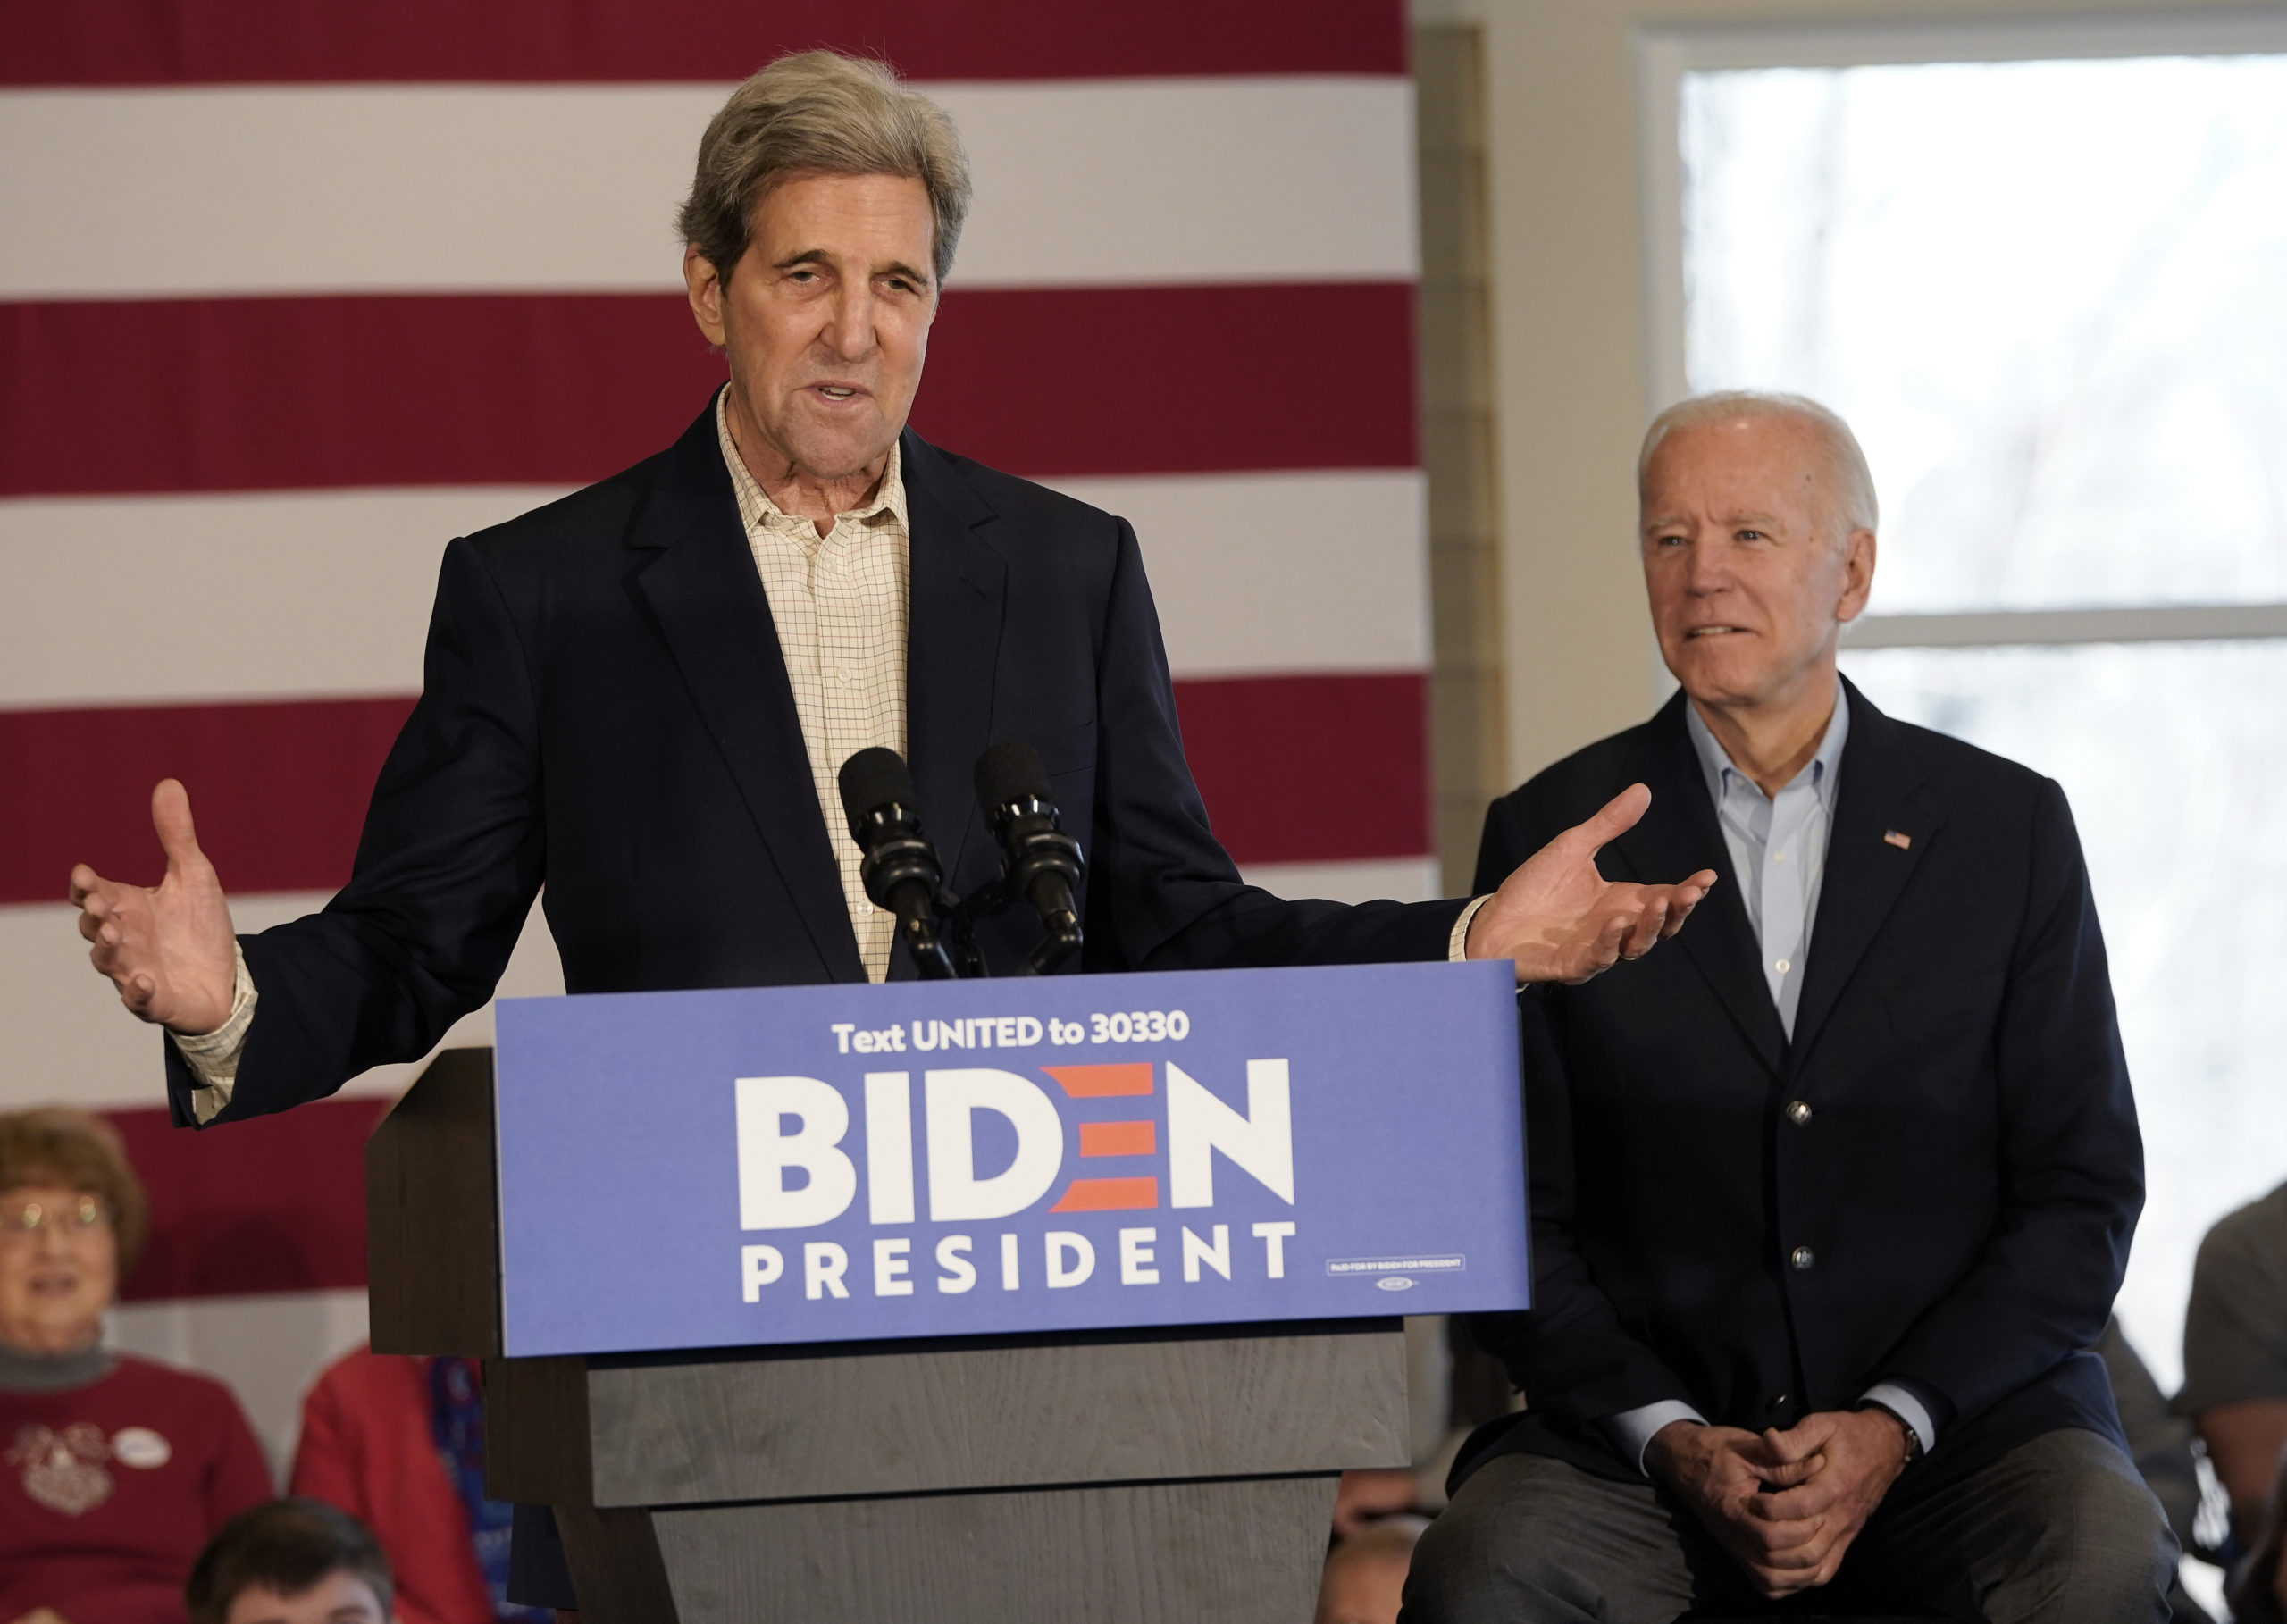 CEDAR RAPIDS, IOWA - DECEMBER 06: Democratic presidential candidate former U.S. Vice president Joe Biden (R) campaigns with former Democratic presidential candidate John Kerry (L) December 6, 2019 in Cedar Rapids, Iowa. Kerry announced his endorsement of Biden yesterday with the Iowa caucuses less than two months away. (Photo by Win McNamee/Getty Images)